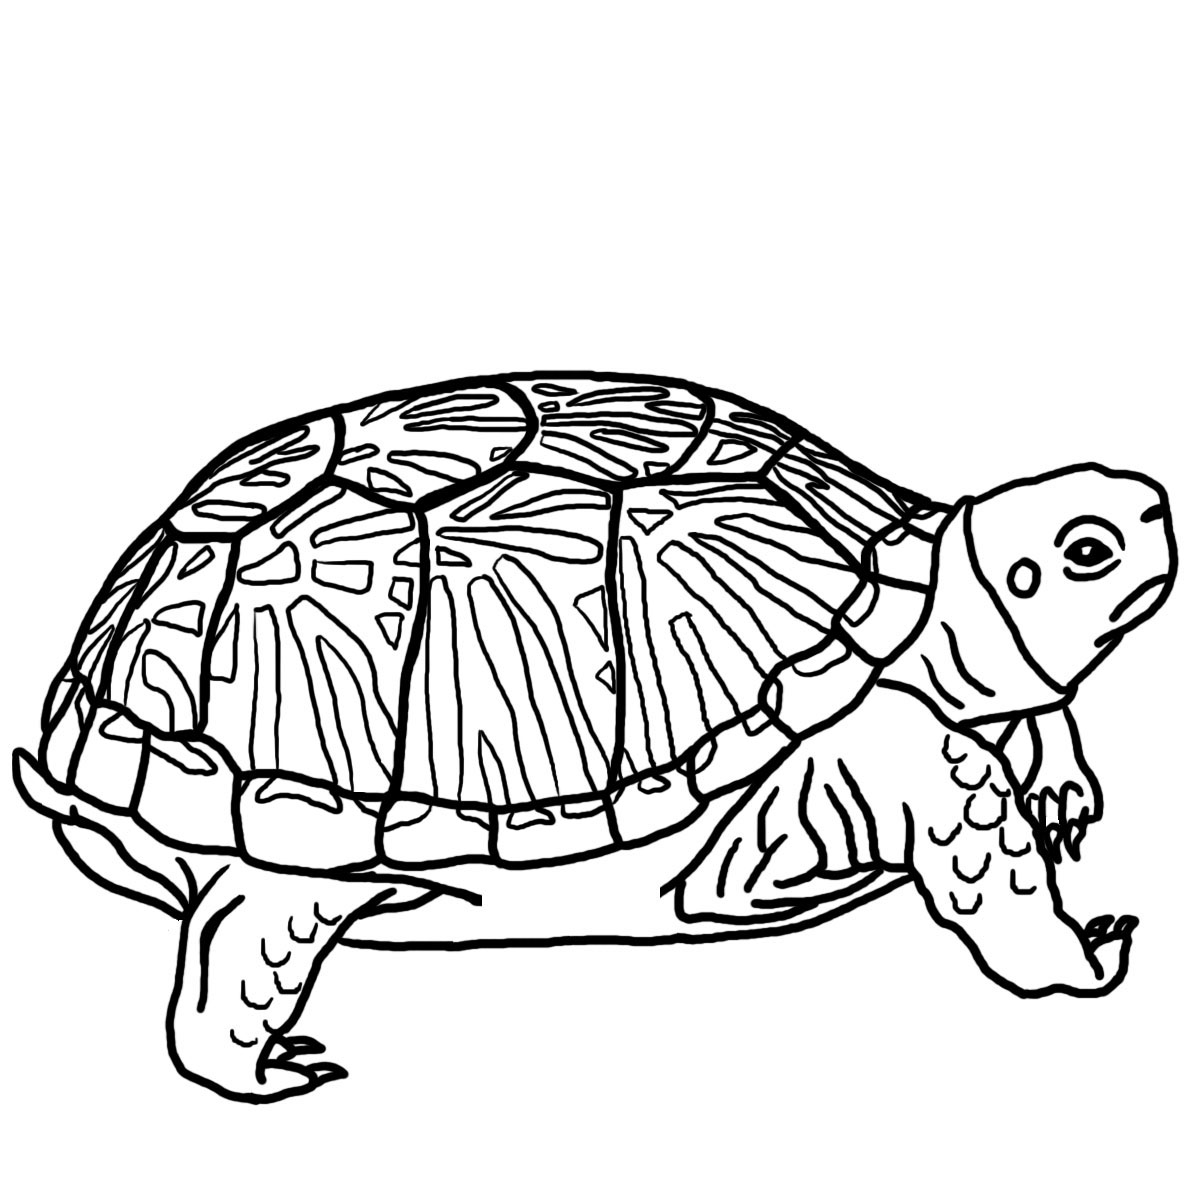 Turtles Clipart Black And White